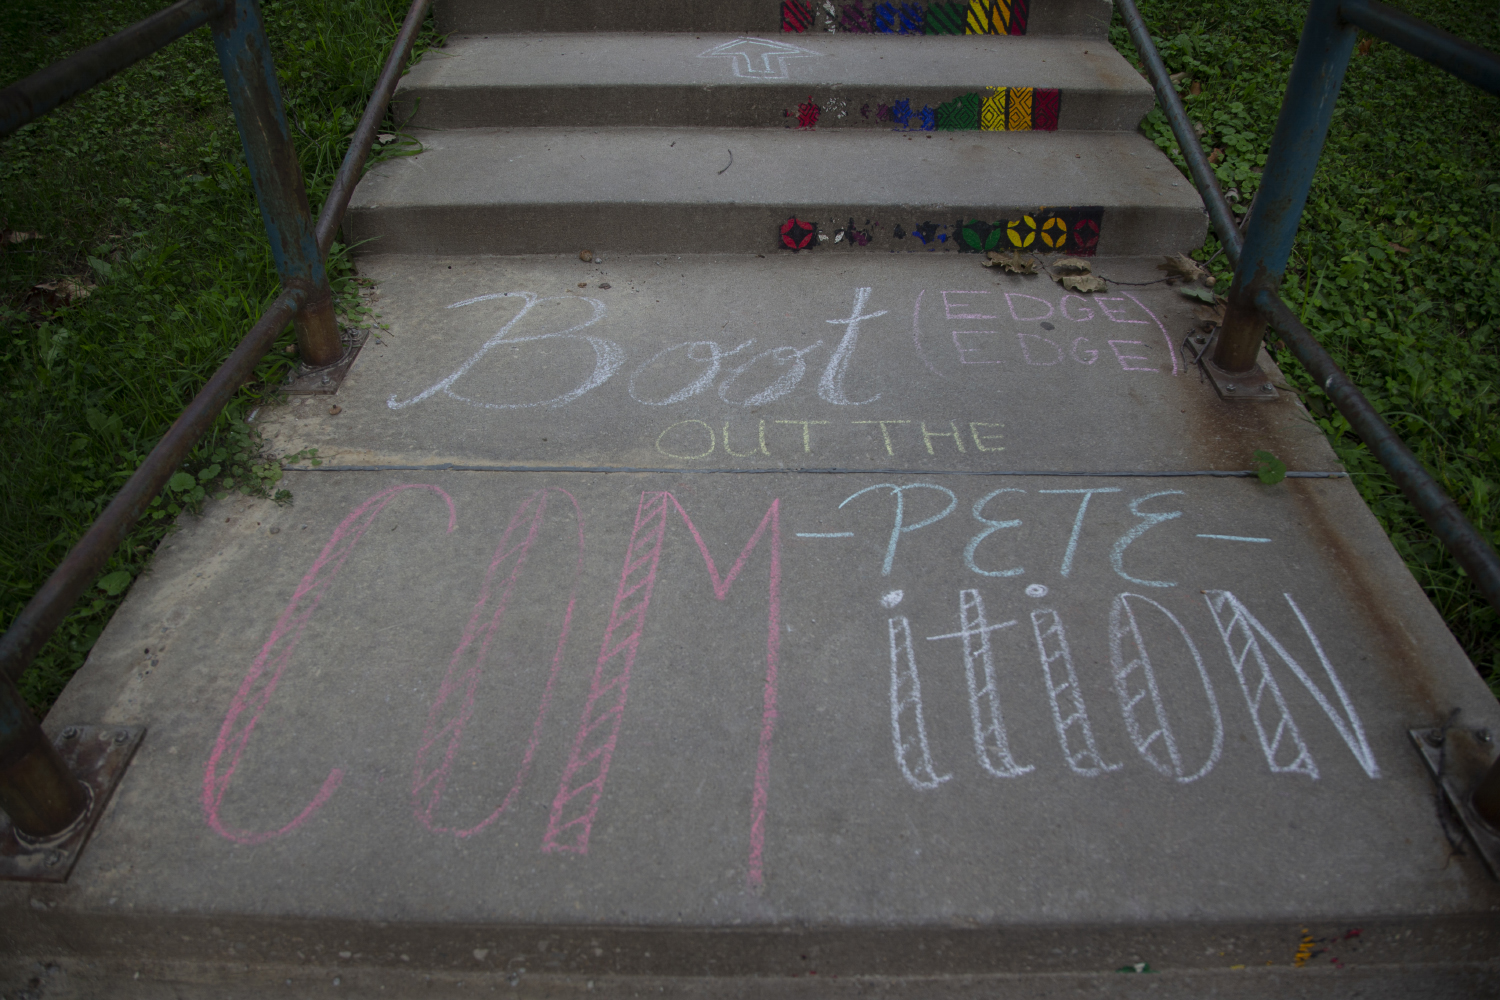 Chalk+is+seen+on+a+sidewalk+advertising+the+lawn+event+celebrating+the+opening+of+a+new+campaign+office+for+2020+Democratic+candidate+Pete+Buttigieg+in+downtown+Iowa+City+on+September+2%2C+2019.